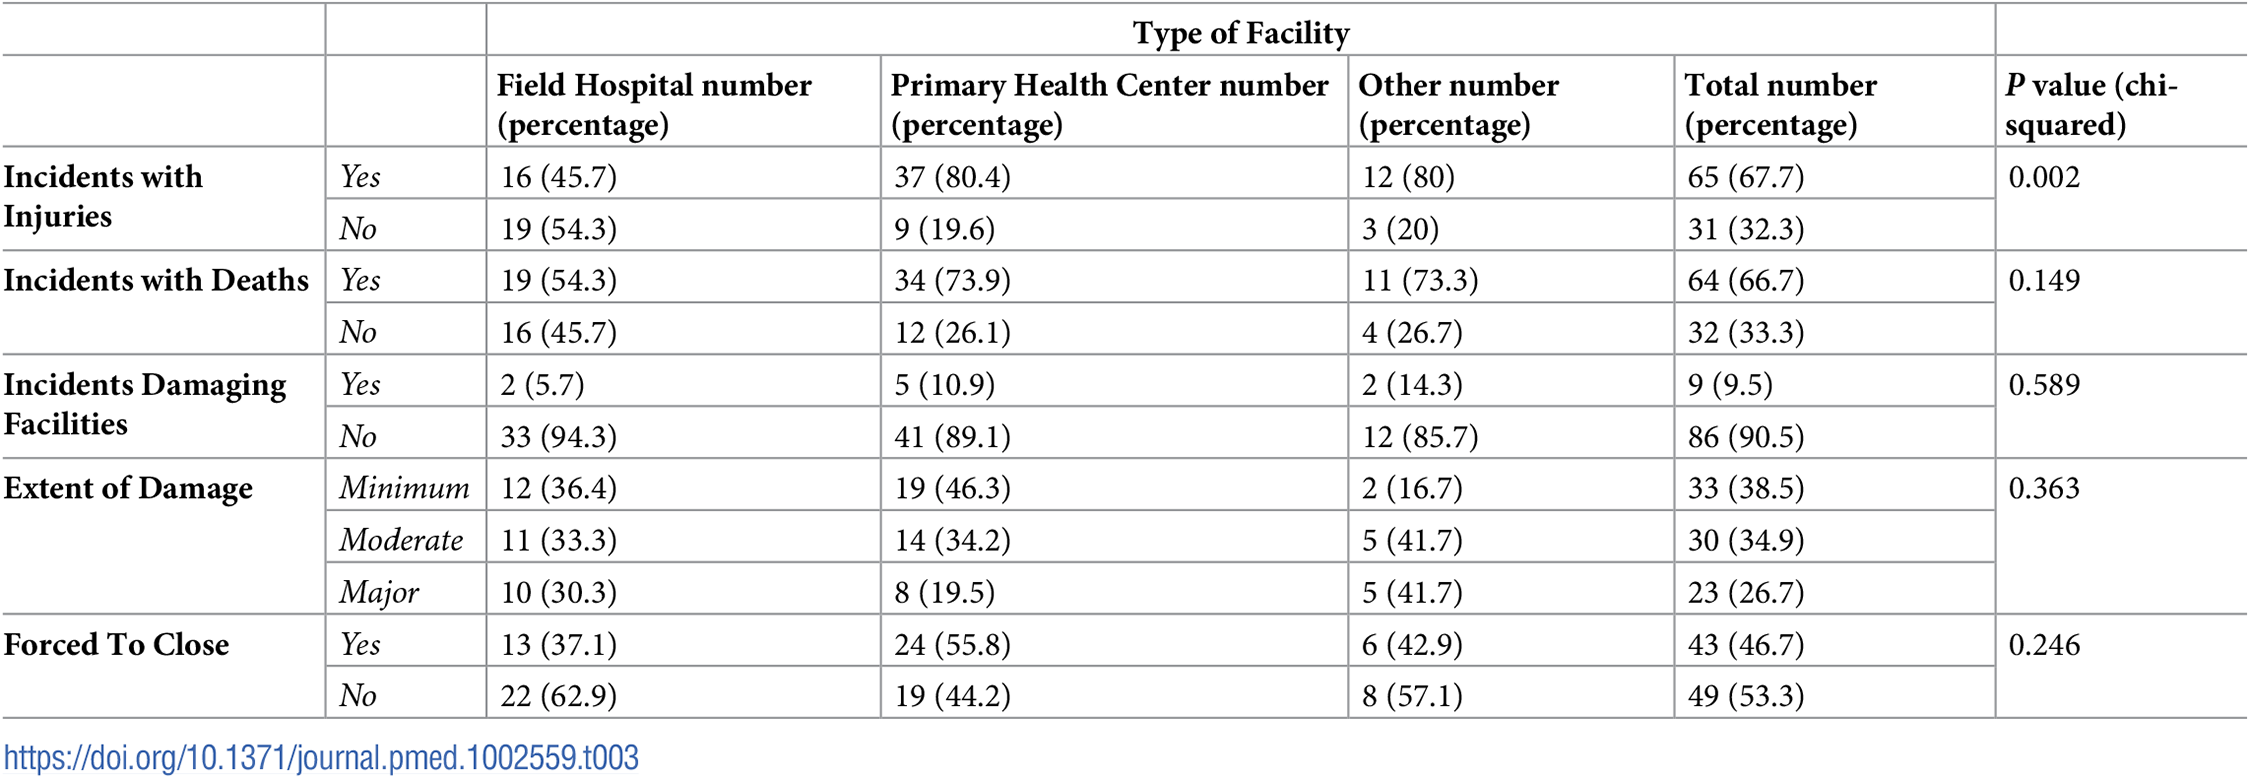 Comparisons of consequences between types of facility.